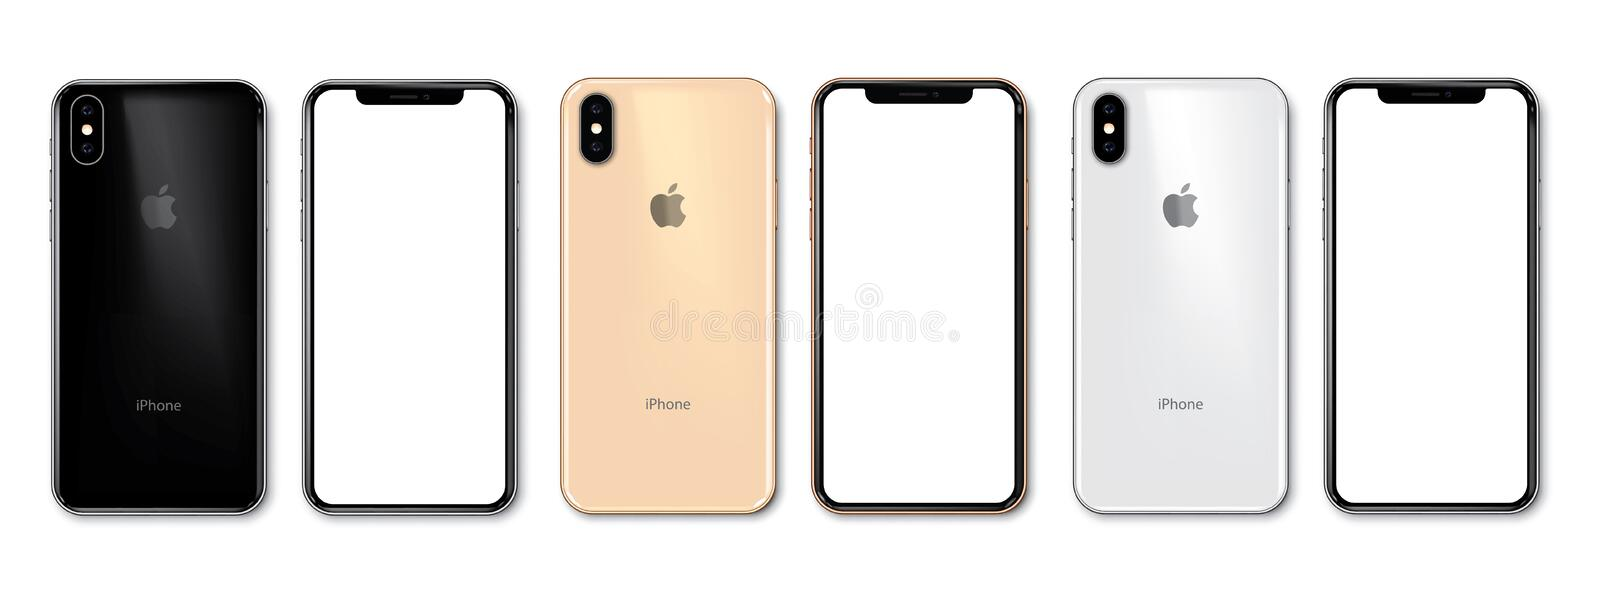 New iPhone Xs in 3 colors royalty free illustration